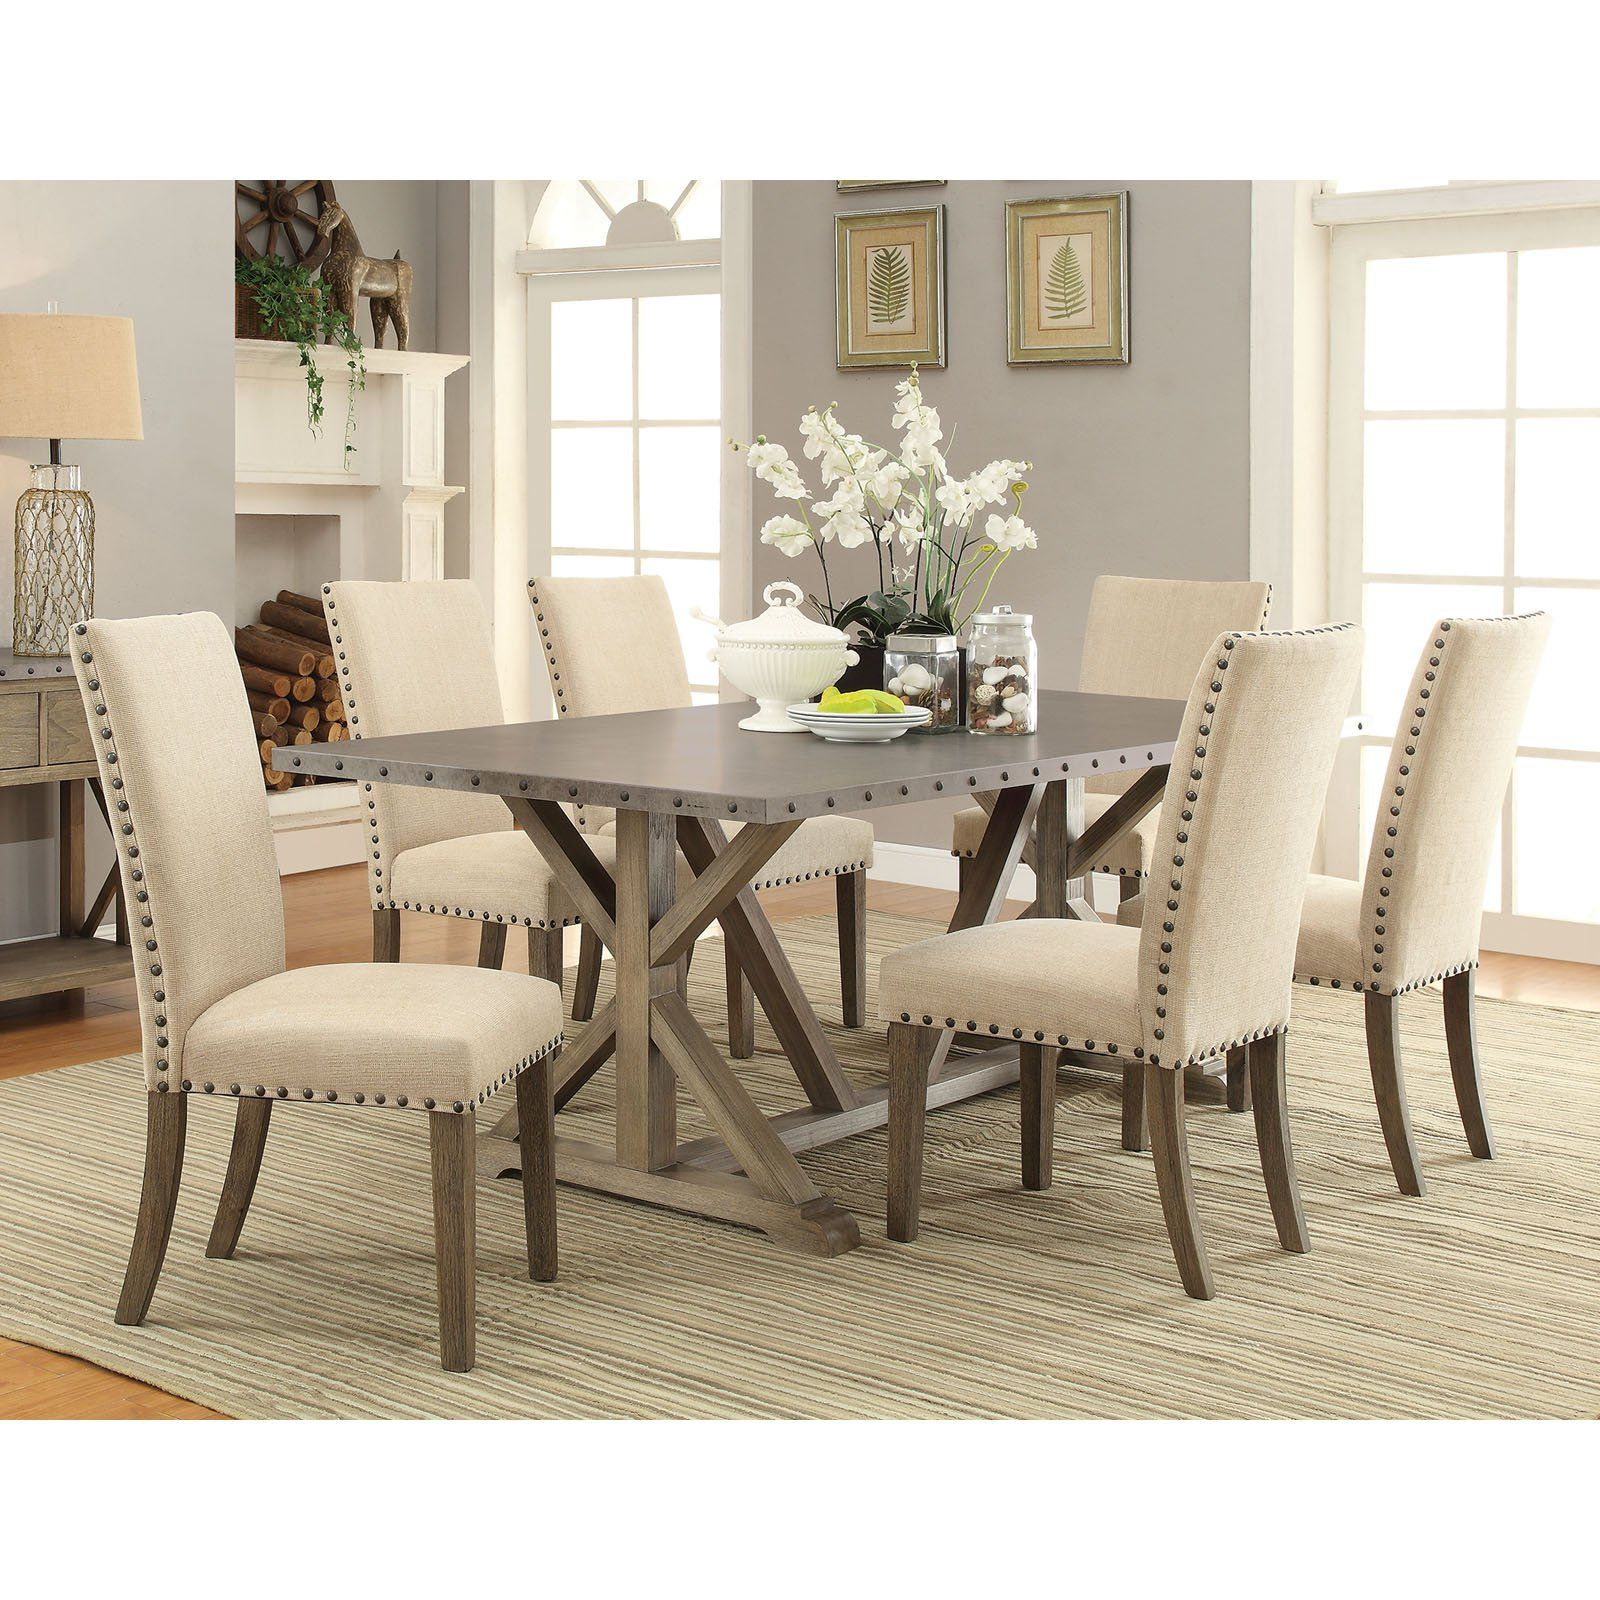 Coaster Furniture Coaster Webber 7 Piece Dining Table Set From